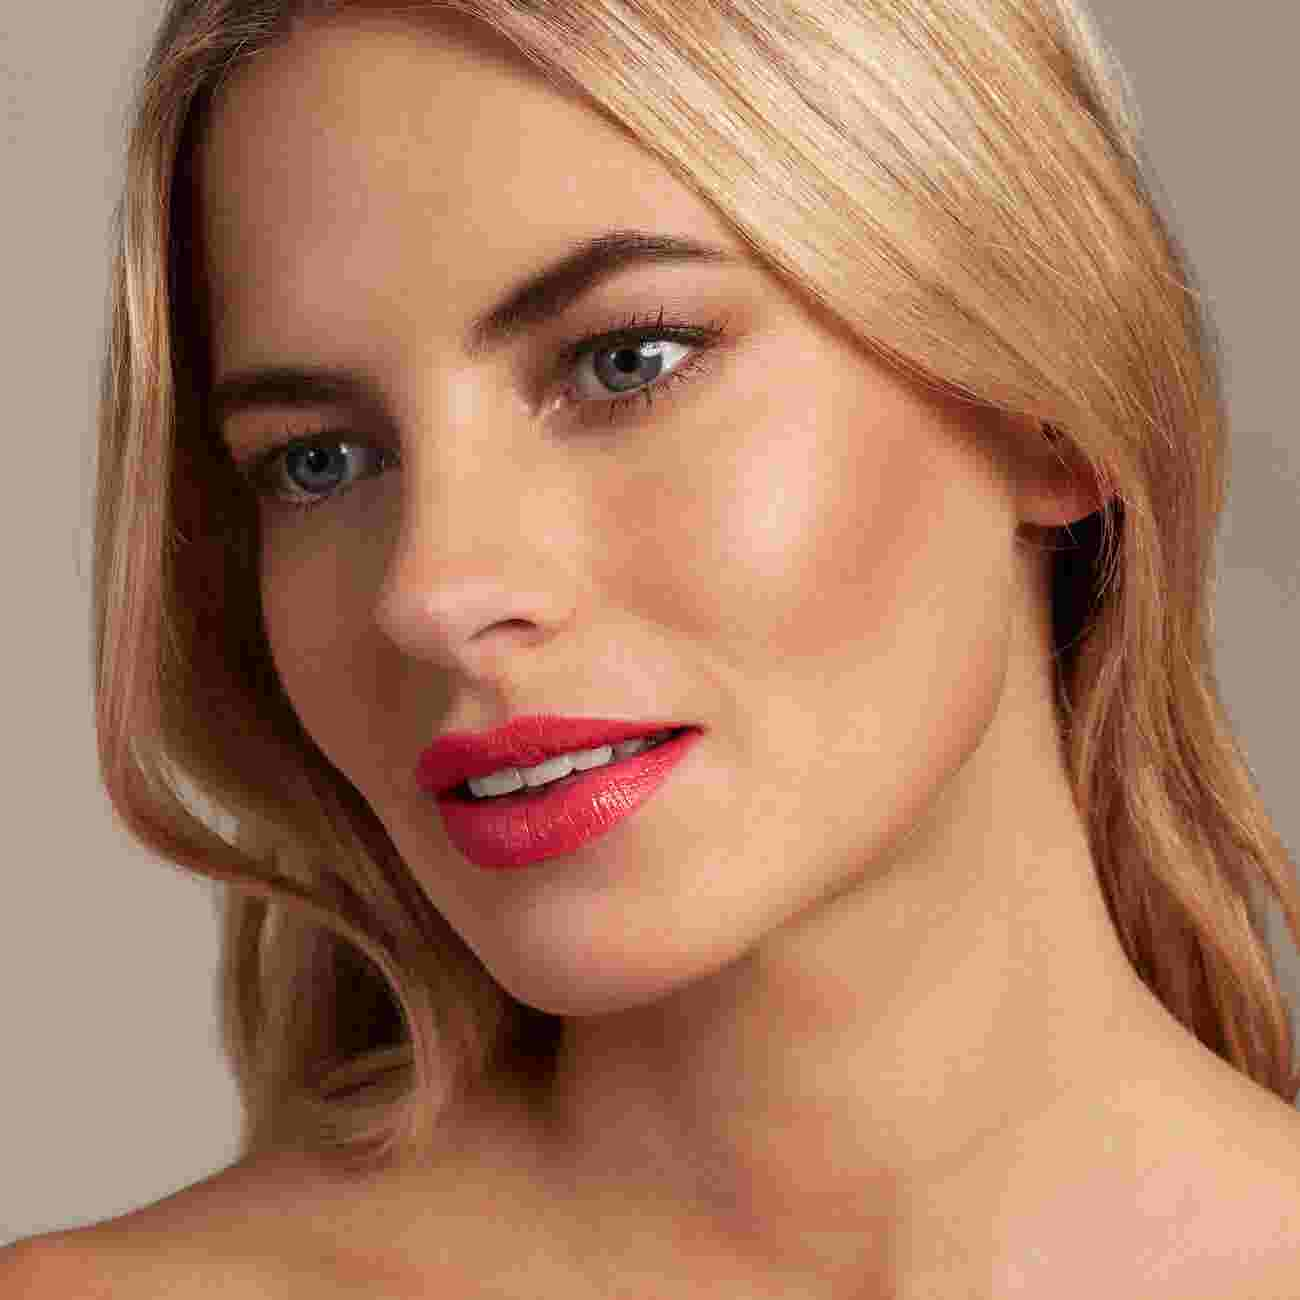 Model wearing coral lipstick by Max Factor